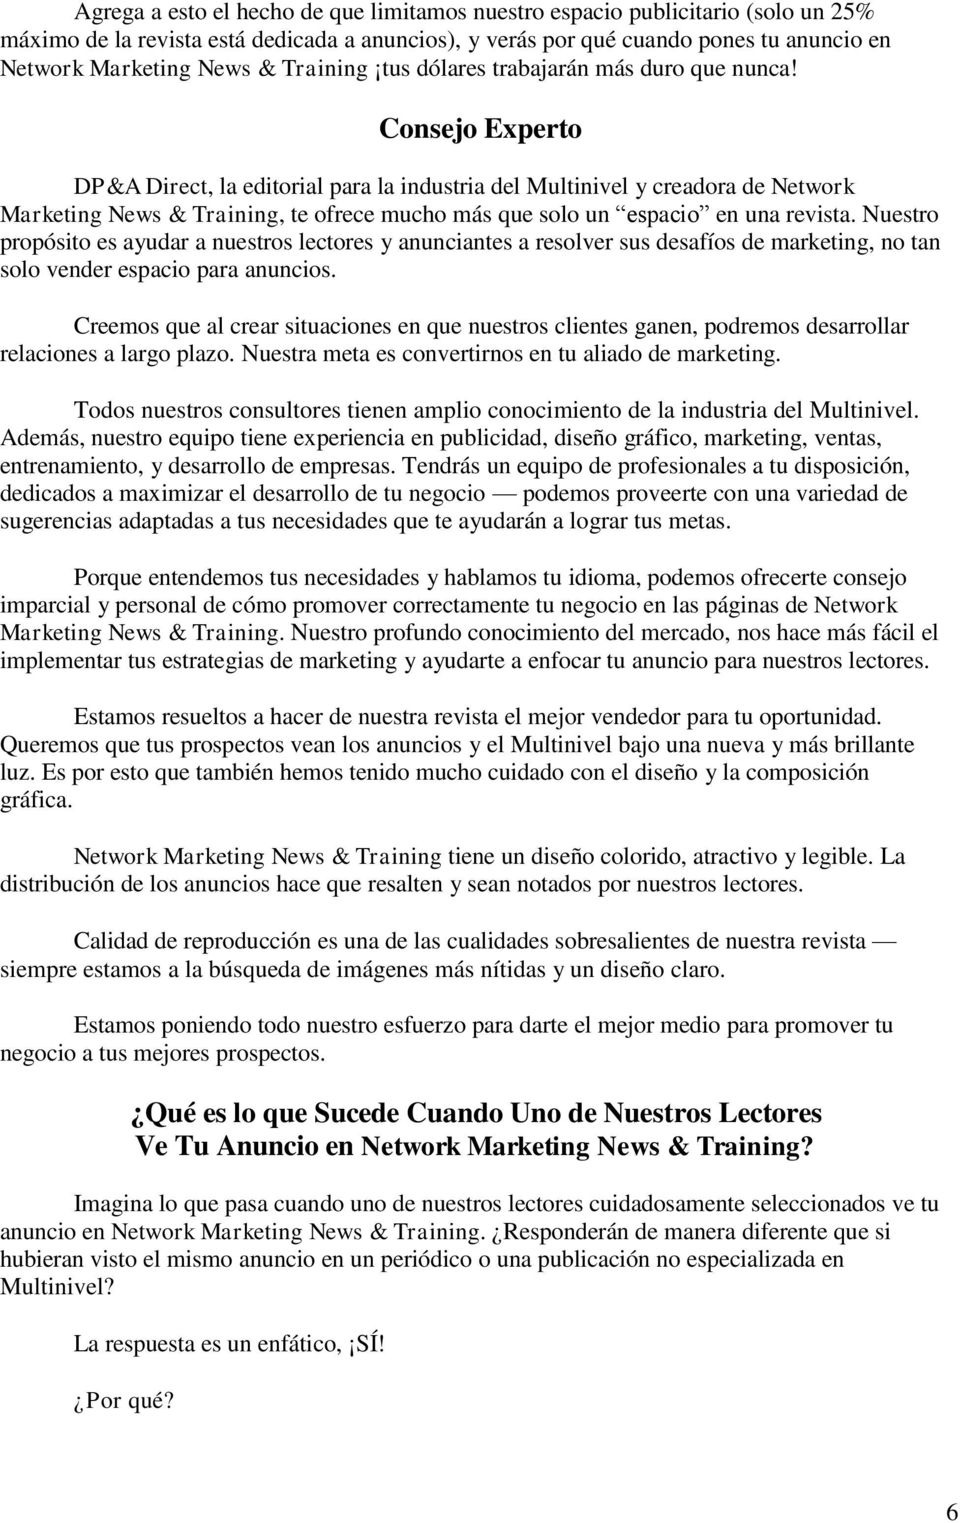 Consejo Experto DP&A Direct, la editorial para la industria del Multinivel y creadora de Network Marketing News & Training, te ofrece mucho más que solo un espacio en una revista.